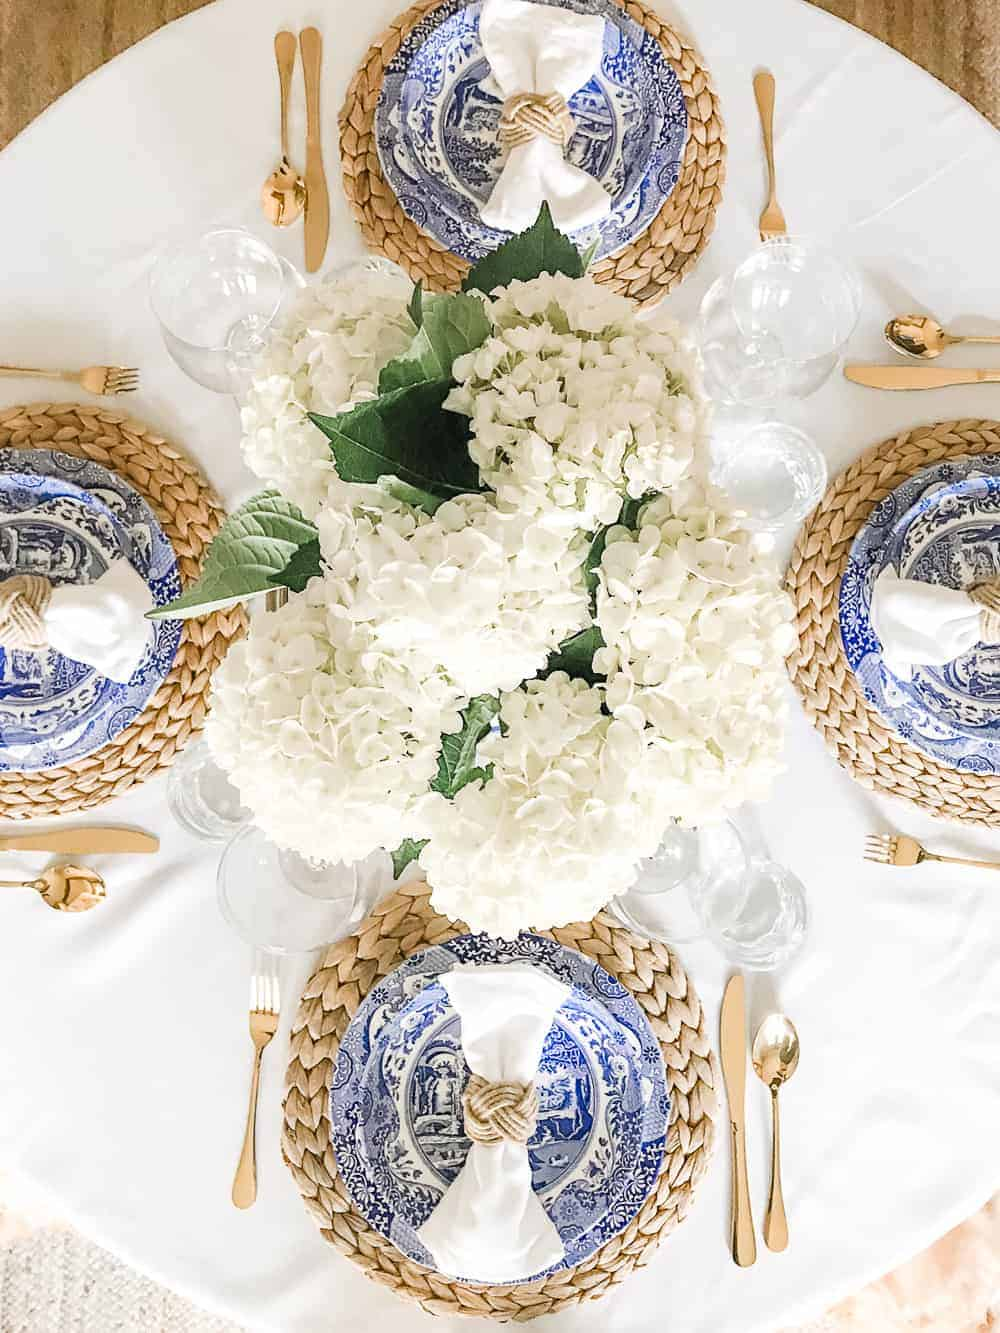 White hydrangeas and classic blue and white plates with woven chargers.